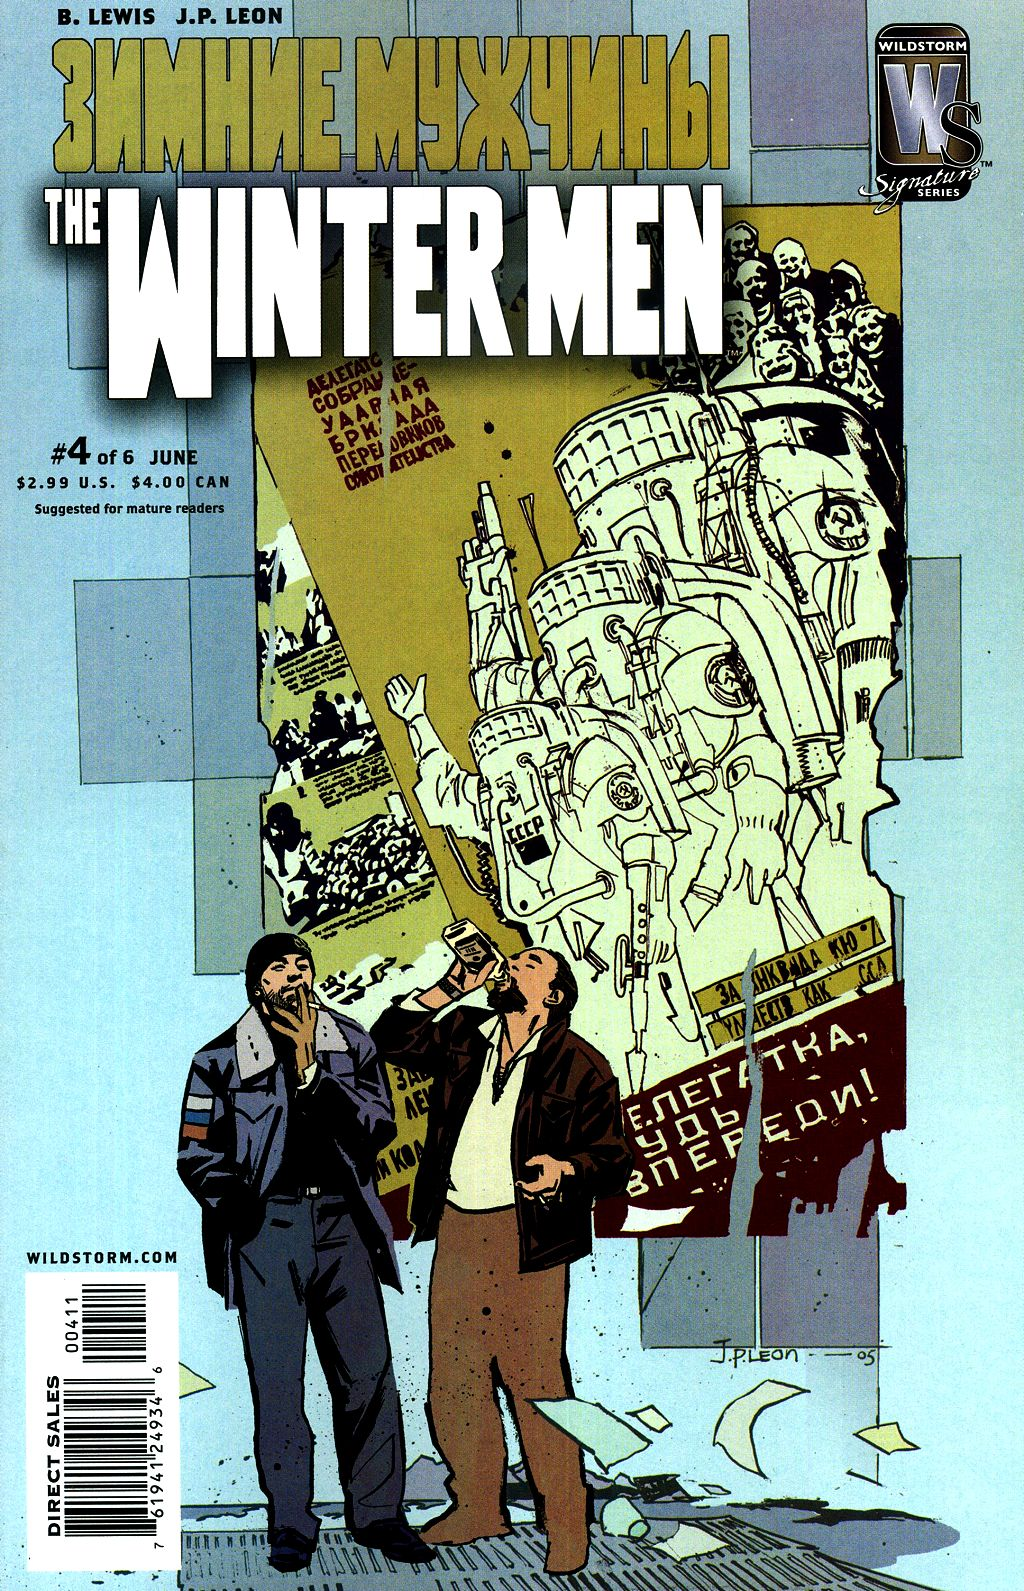 Read online The Winter Men comic -  Issue #4 - 1